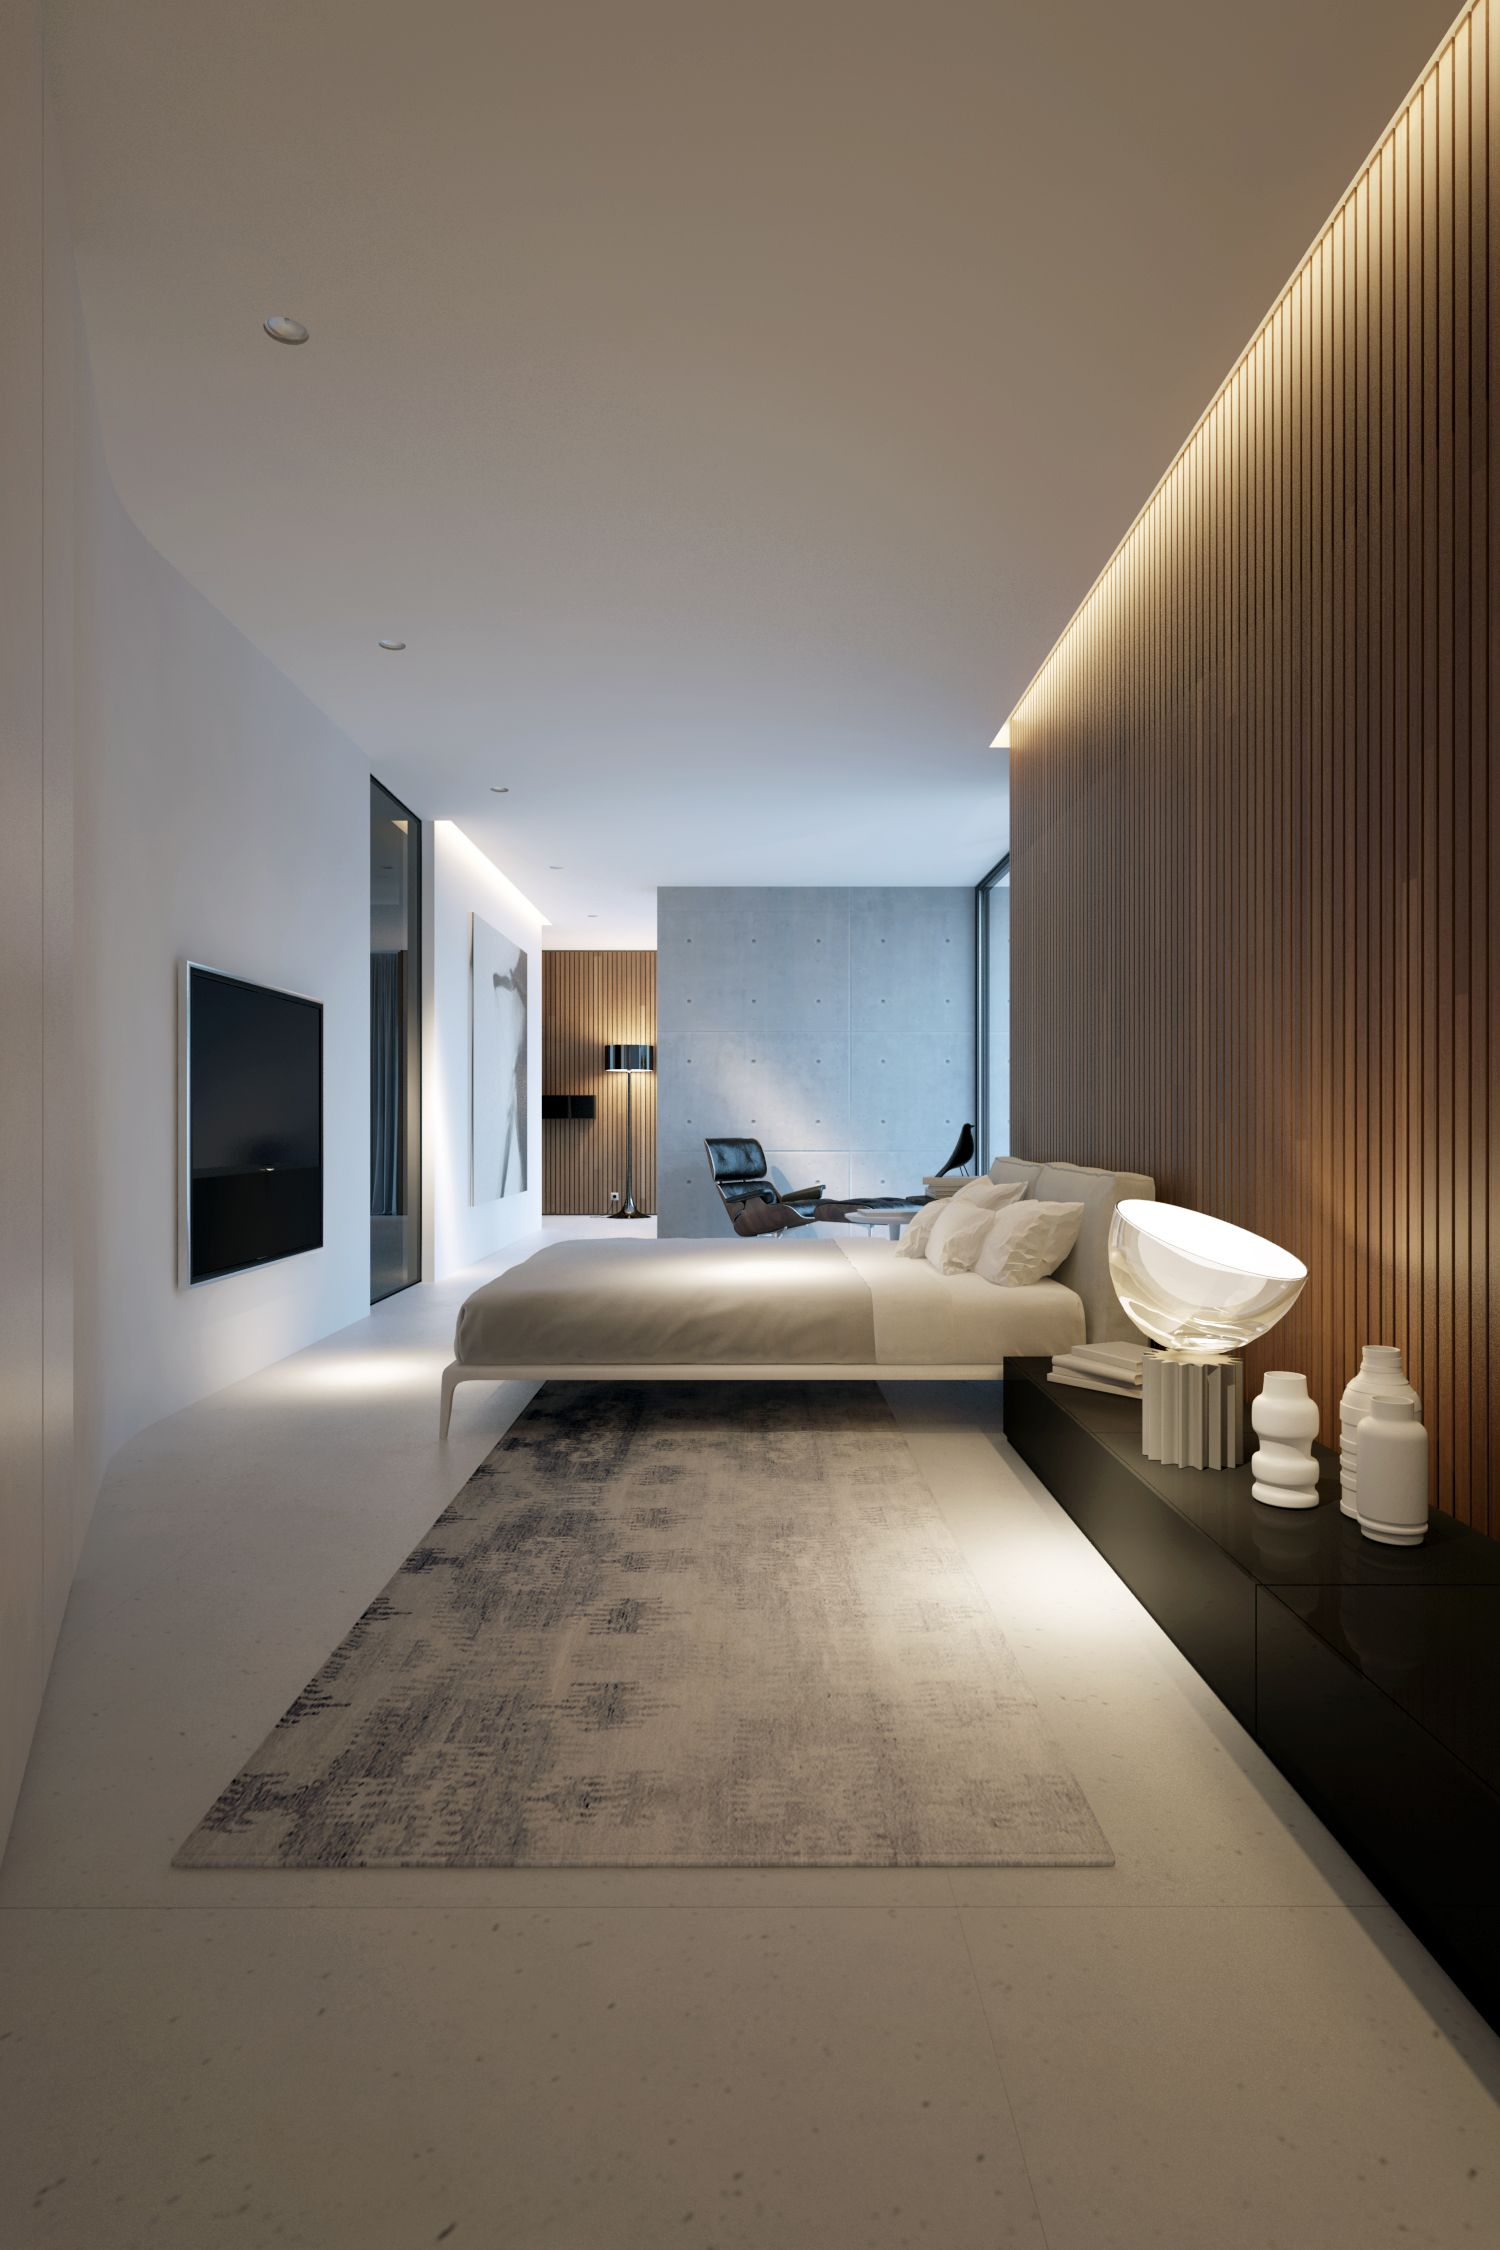 Piano house by line architects spaces pinterest pianos piano house by line architects cove lighting ceilingceiling covinggypsum aloadofball Choice Image